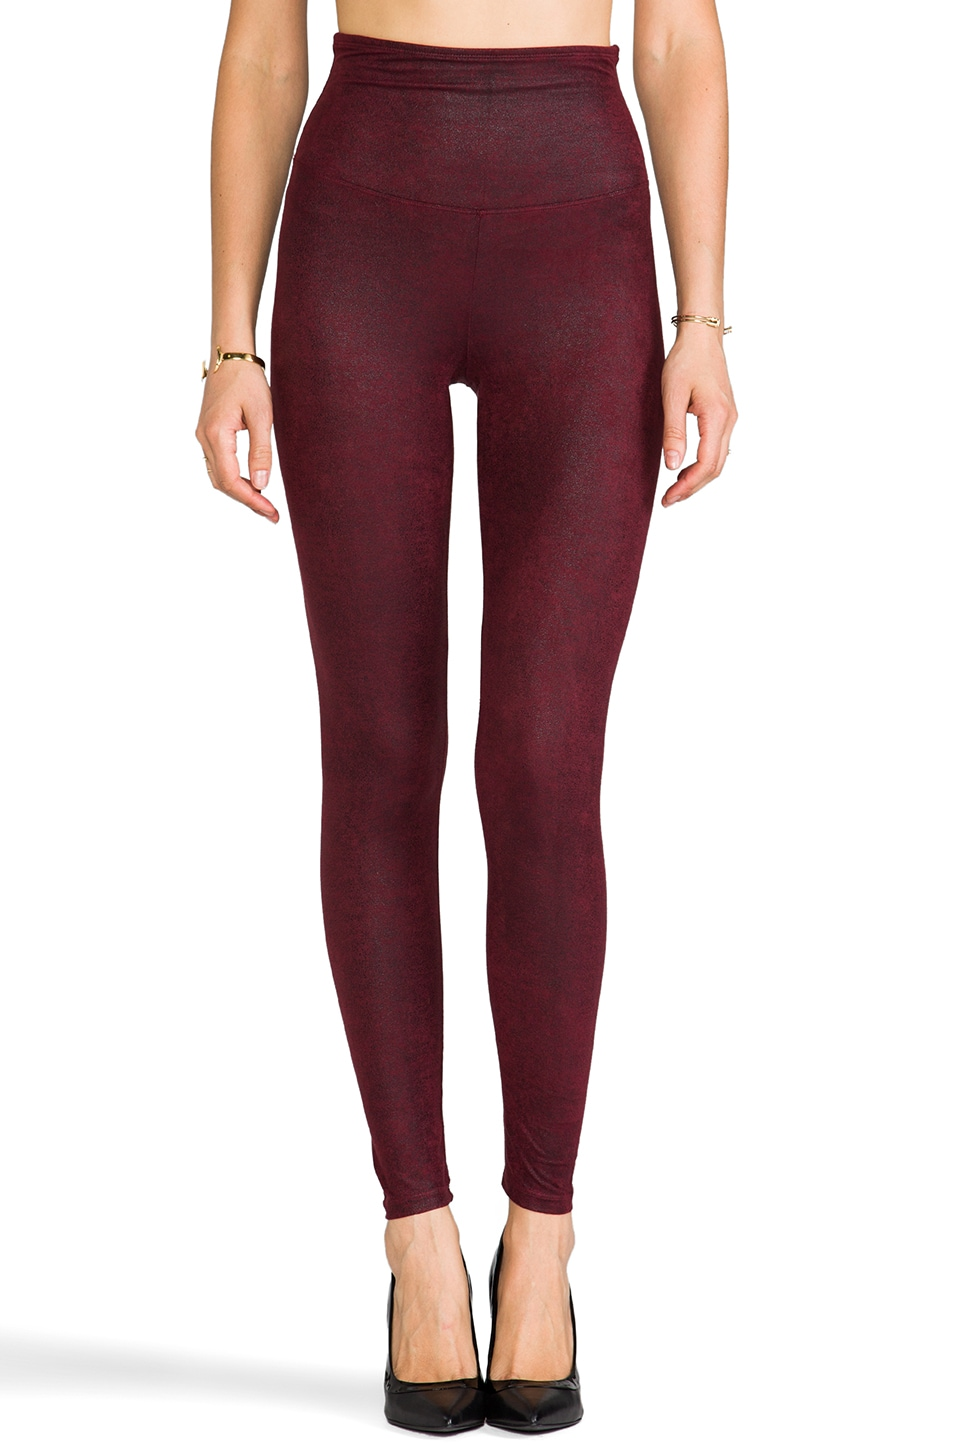 Yummie by Heather Thomson Jade Legging in Port